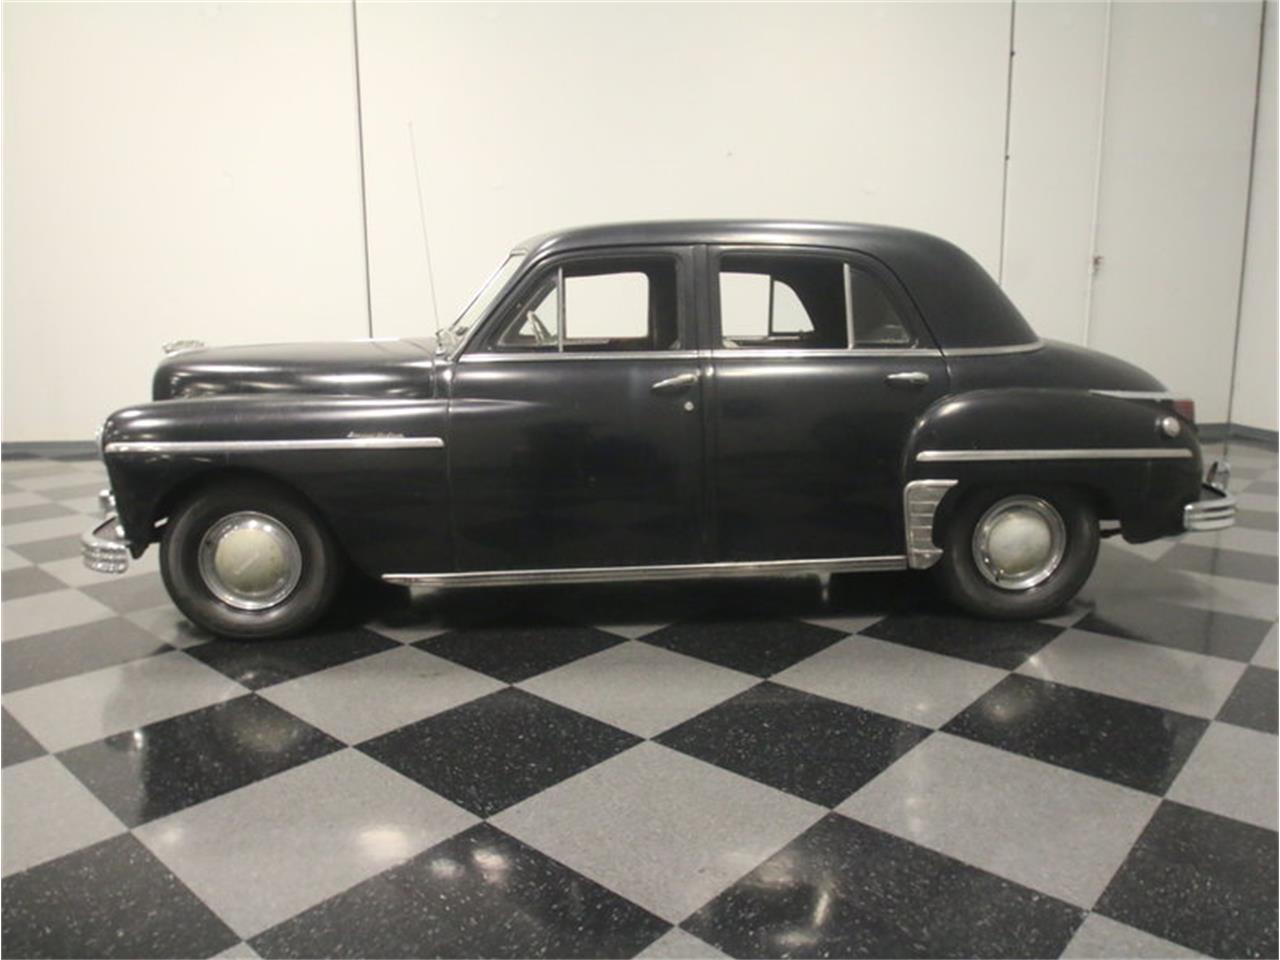 Large Picture of 1949 Special Deluxe located in Lithia Springs Georgia - $8,995.00 Offered by Streetside Classics - Atlanta - L551